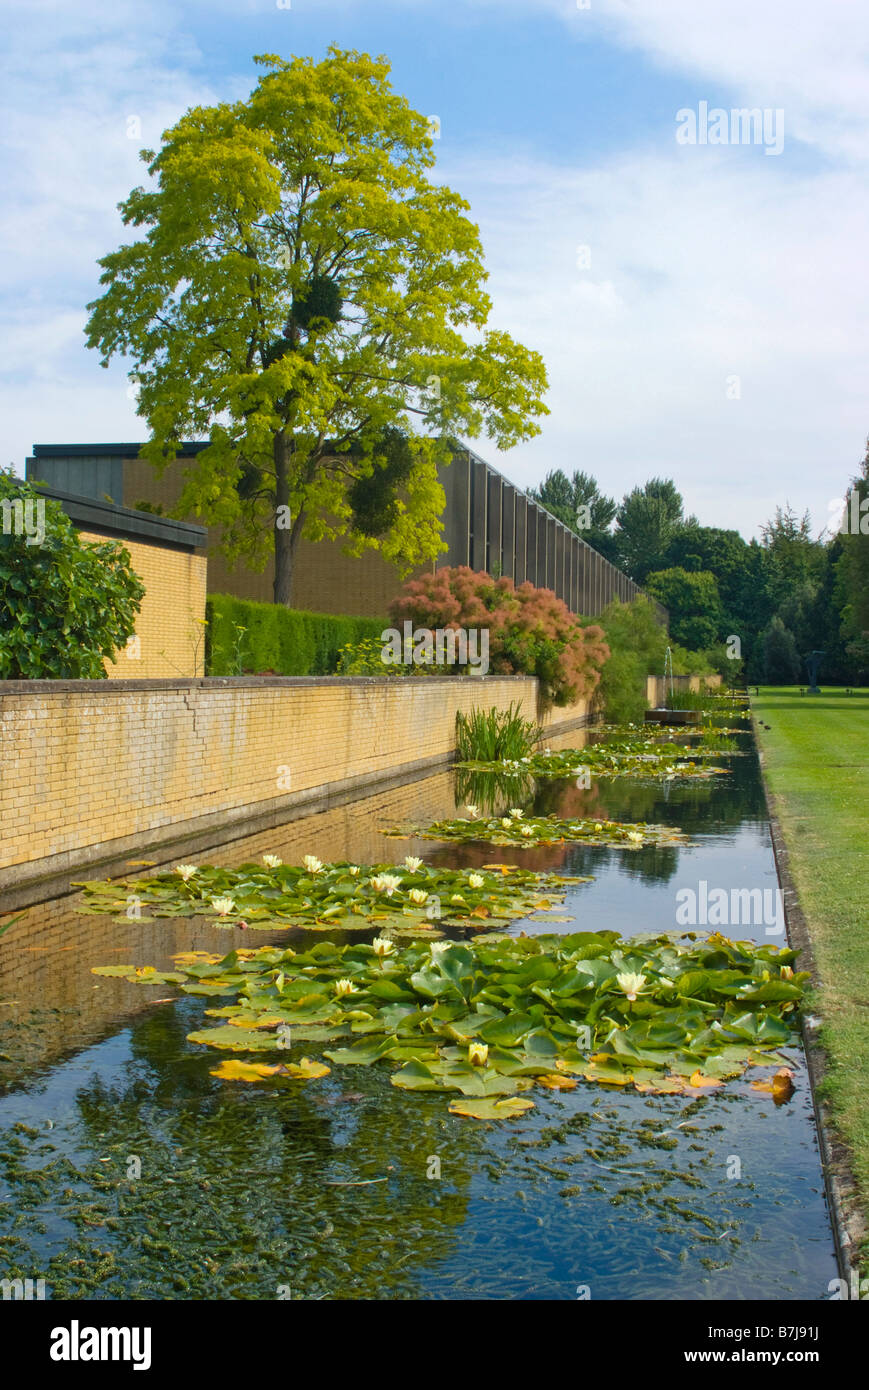 St Catherine's College, Oxford - Stock Image